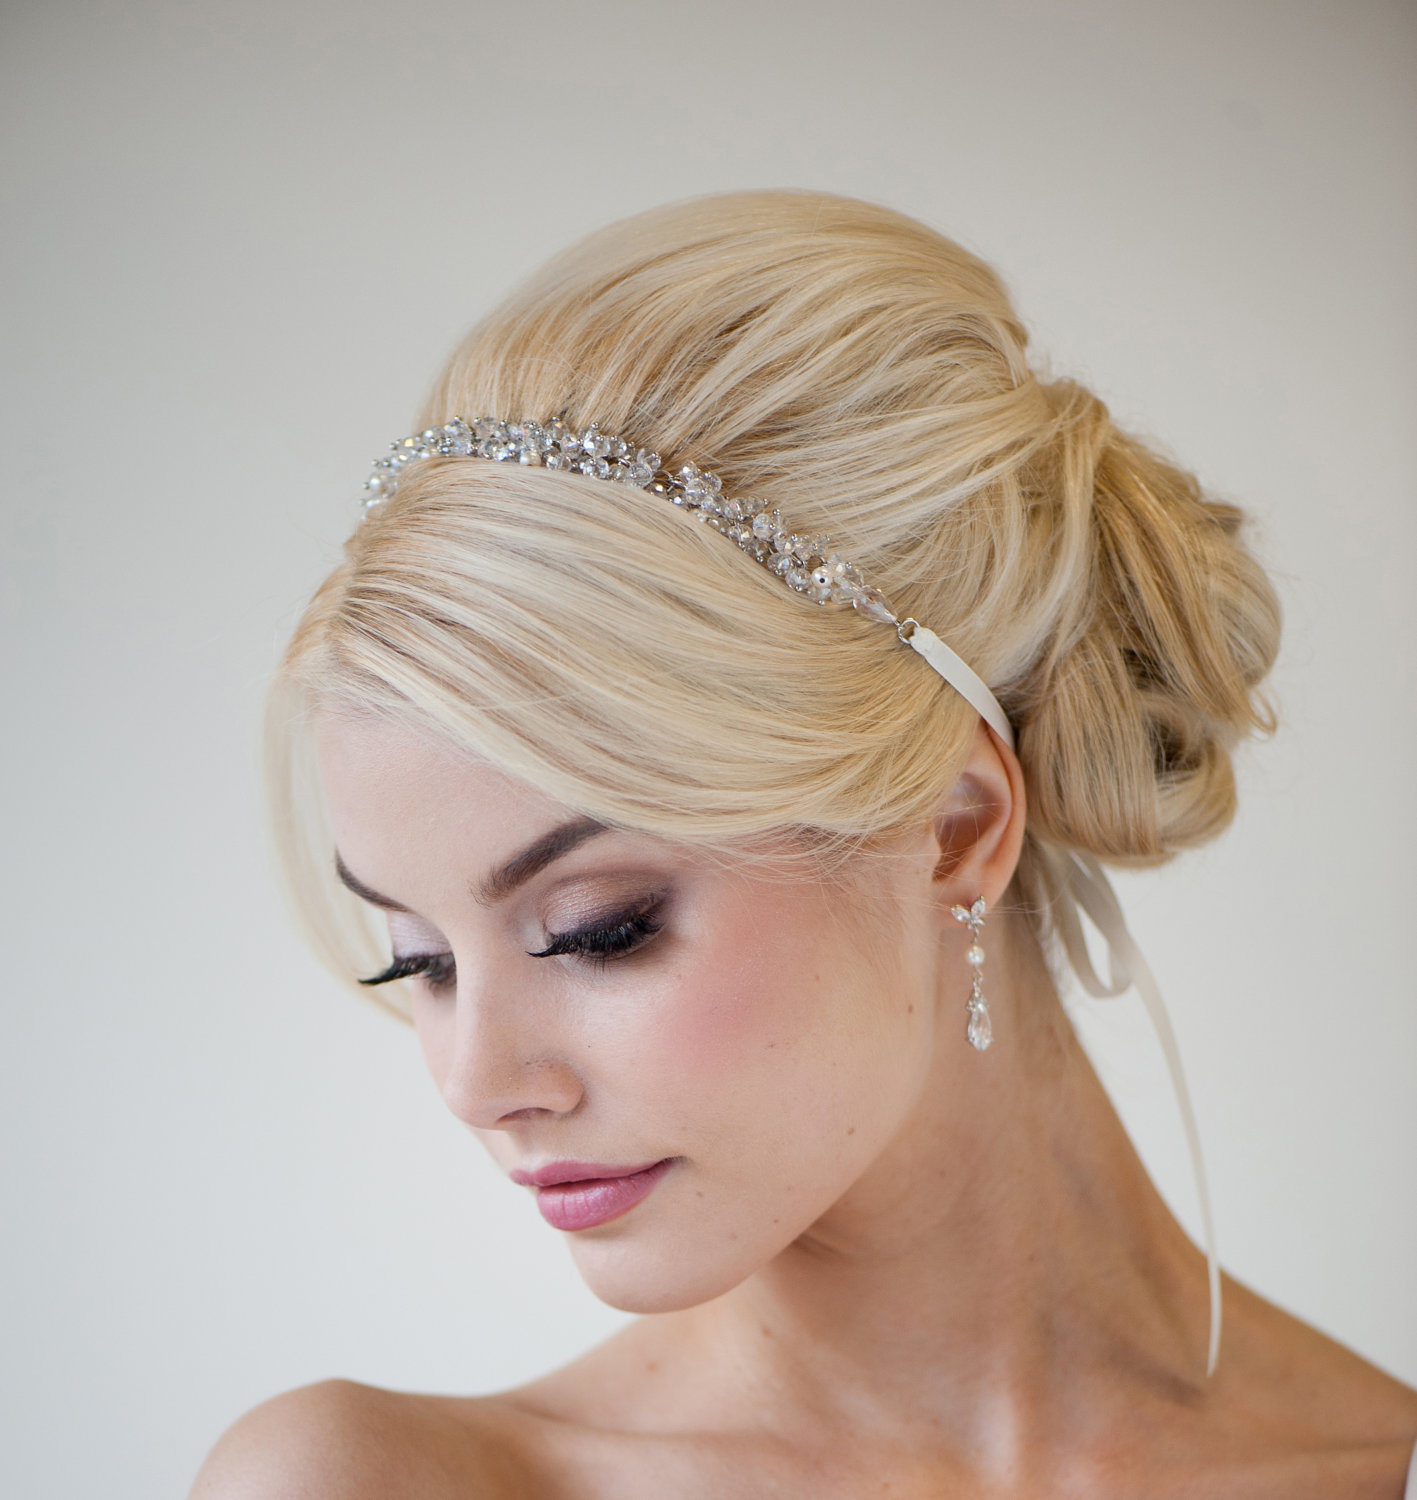 24 Mind-Blowingly Beautiful Wedding Hairstyles